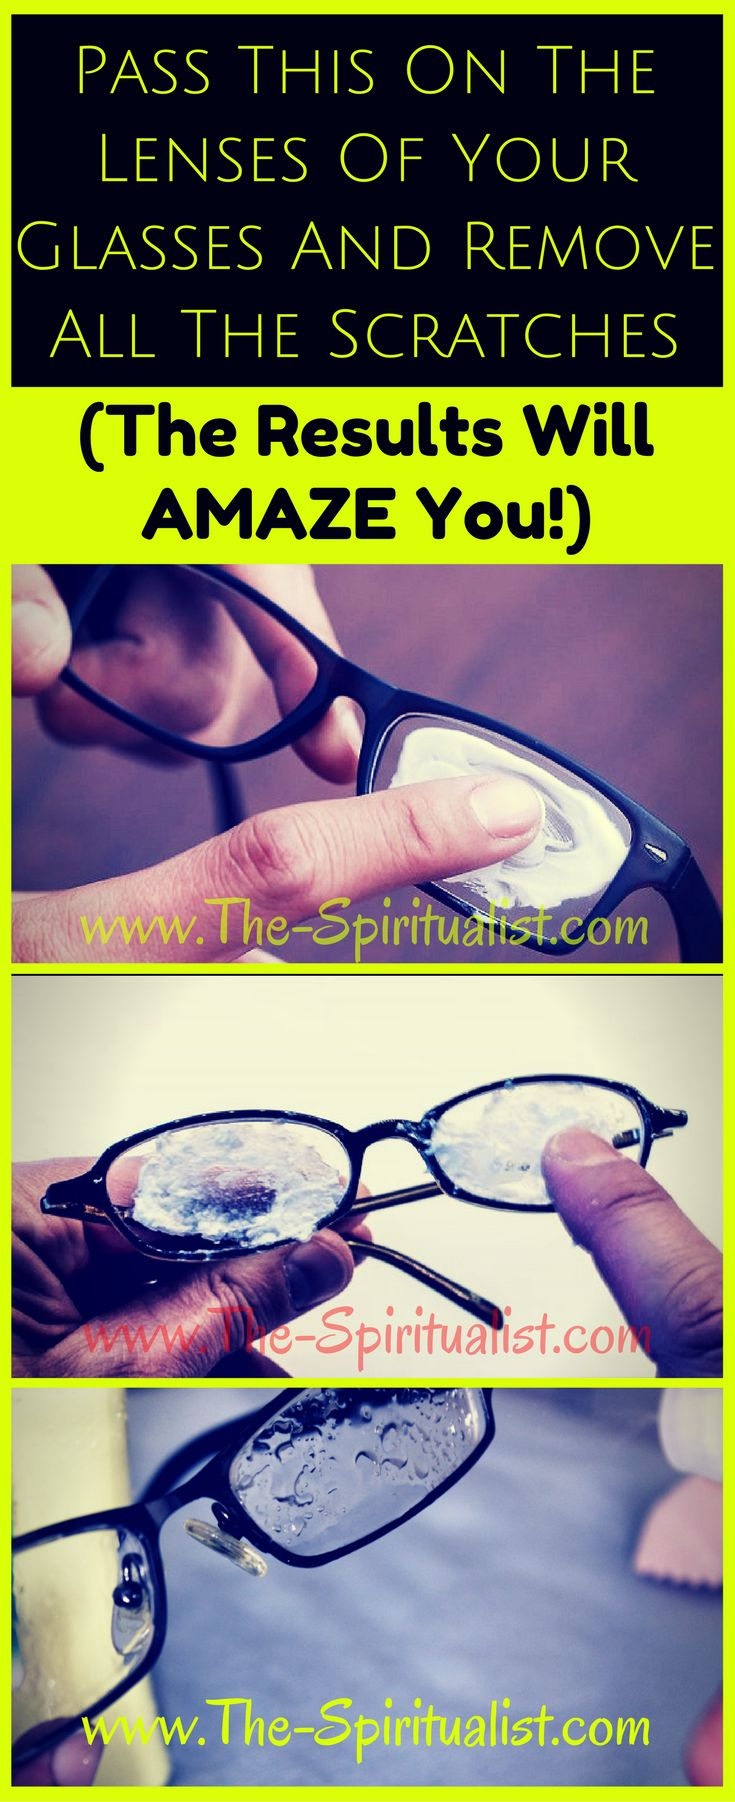 Apply THIS On the Lenses of Your Glasses and Remove All the Scratches (The Results Will AMAZE You!)